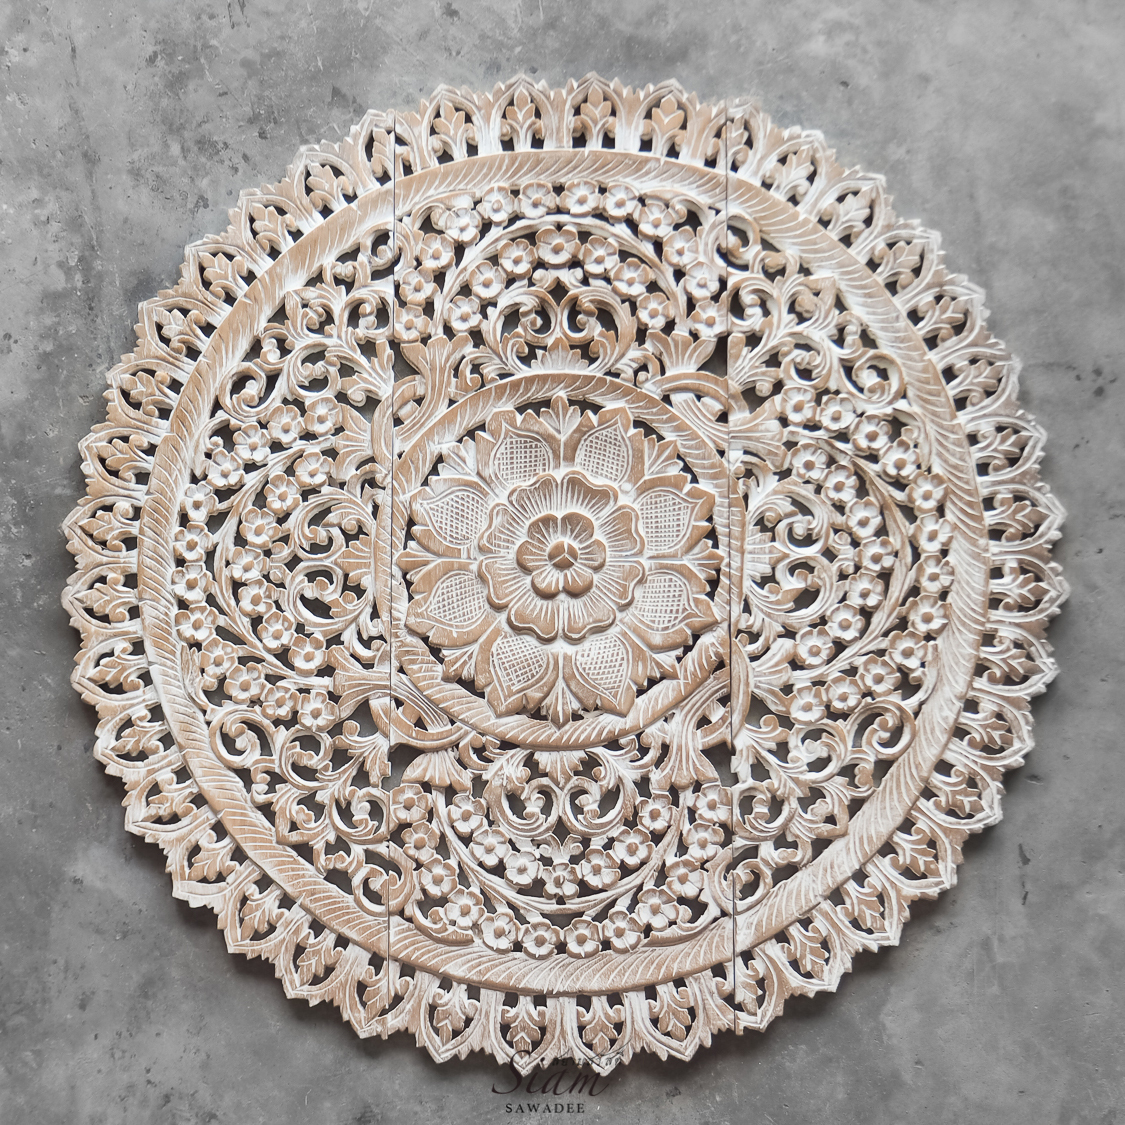 Buy Mandala Wood Carving Wall Panel Decor Mandala Wall Decor Online